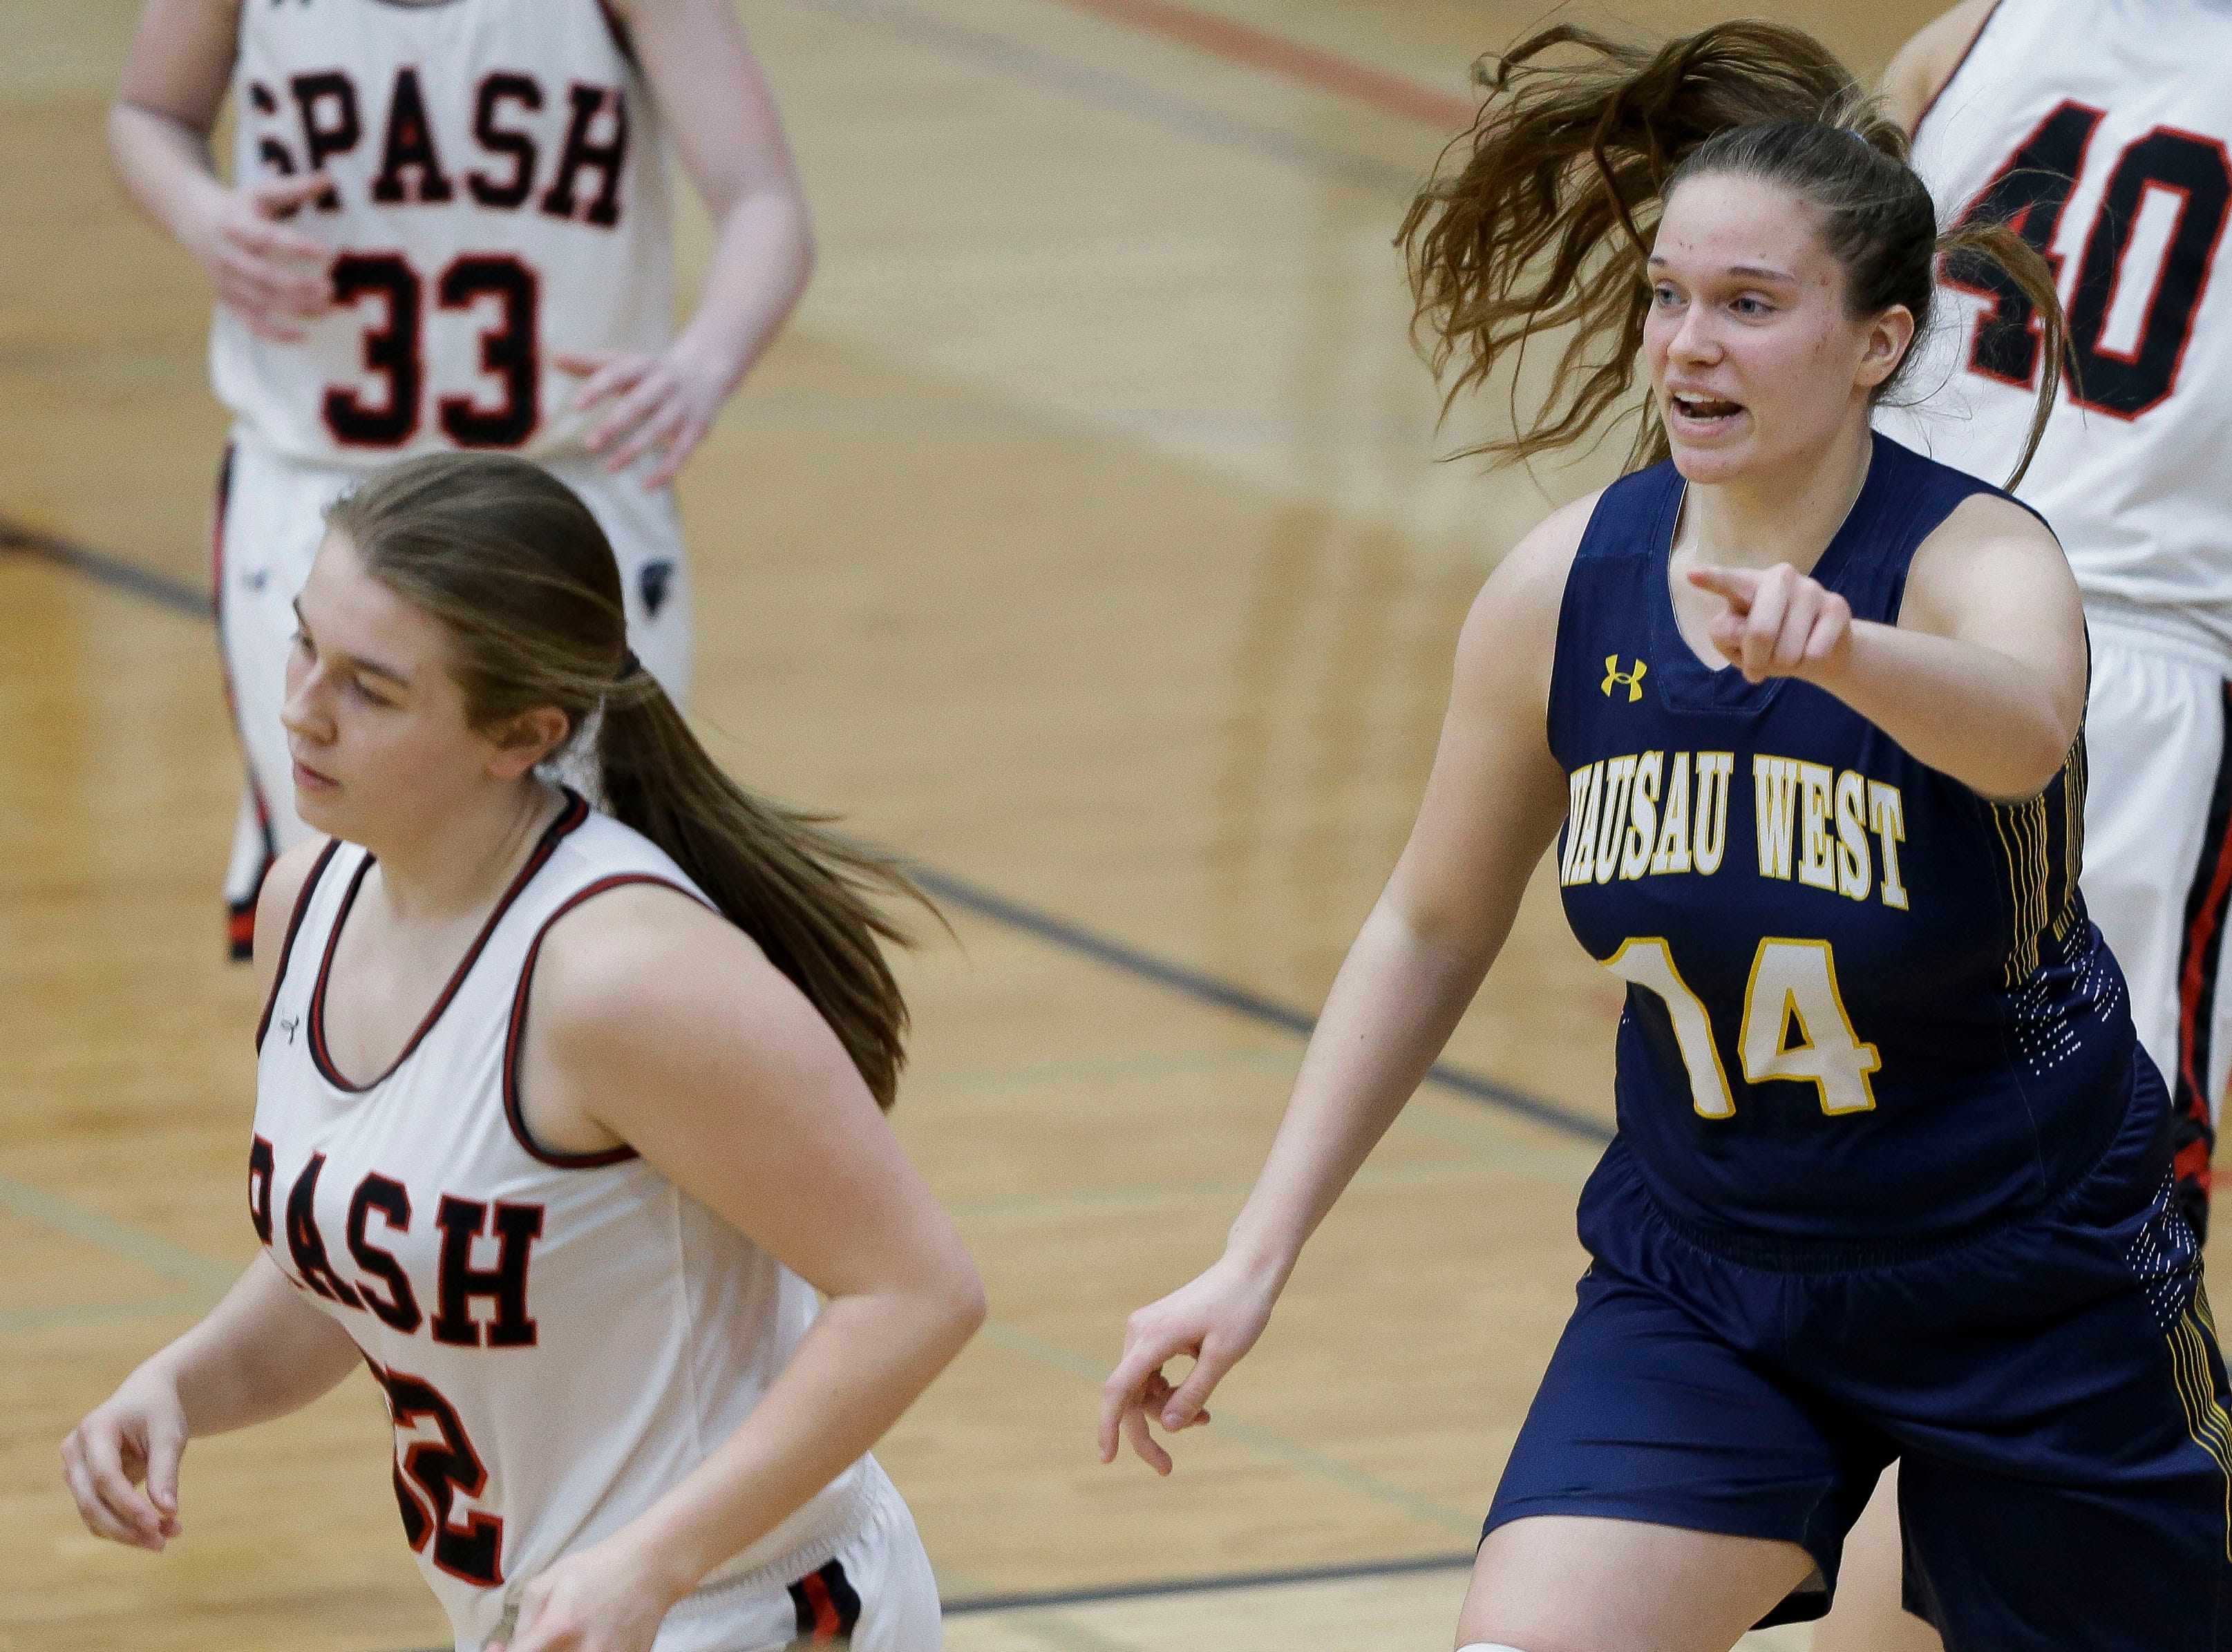 Wausau West's Anna Cunningham (14) reacts after a made basket against SPASH on Thursday, February 14, 2019, at SPASH in Stevens Point, Wis.Tork Mason/USA TODAY NETWORK-Wisconsin